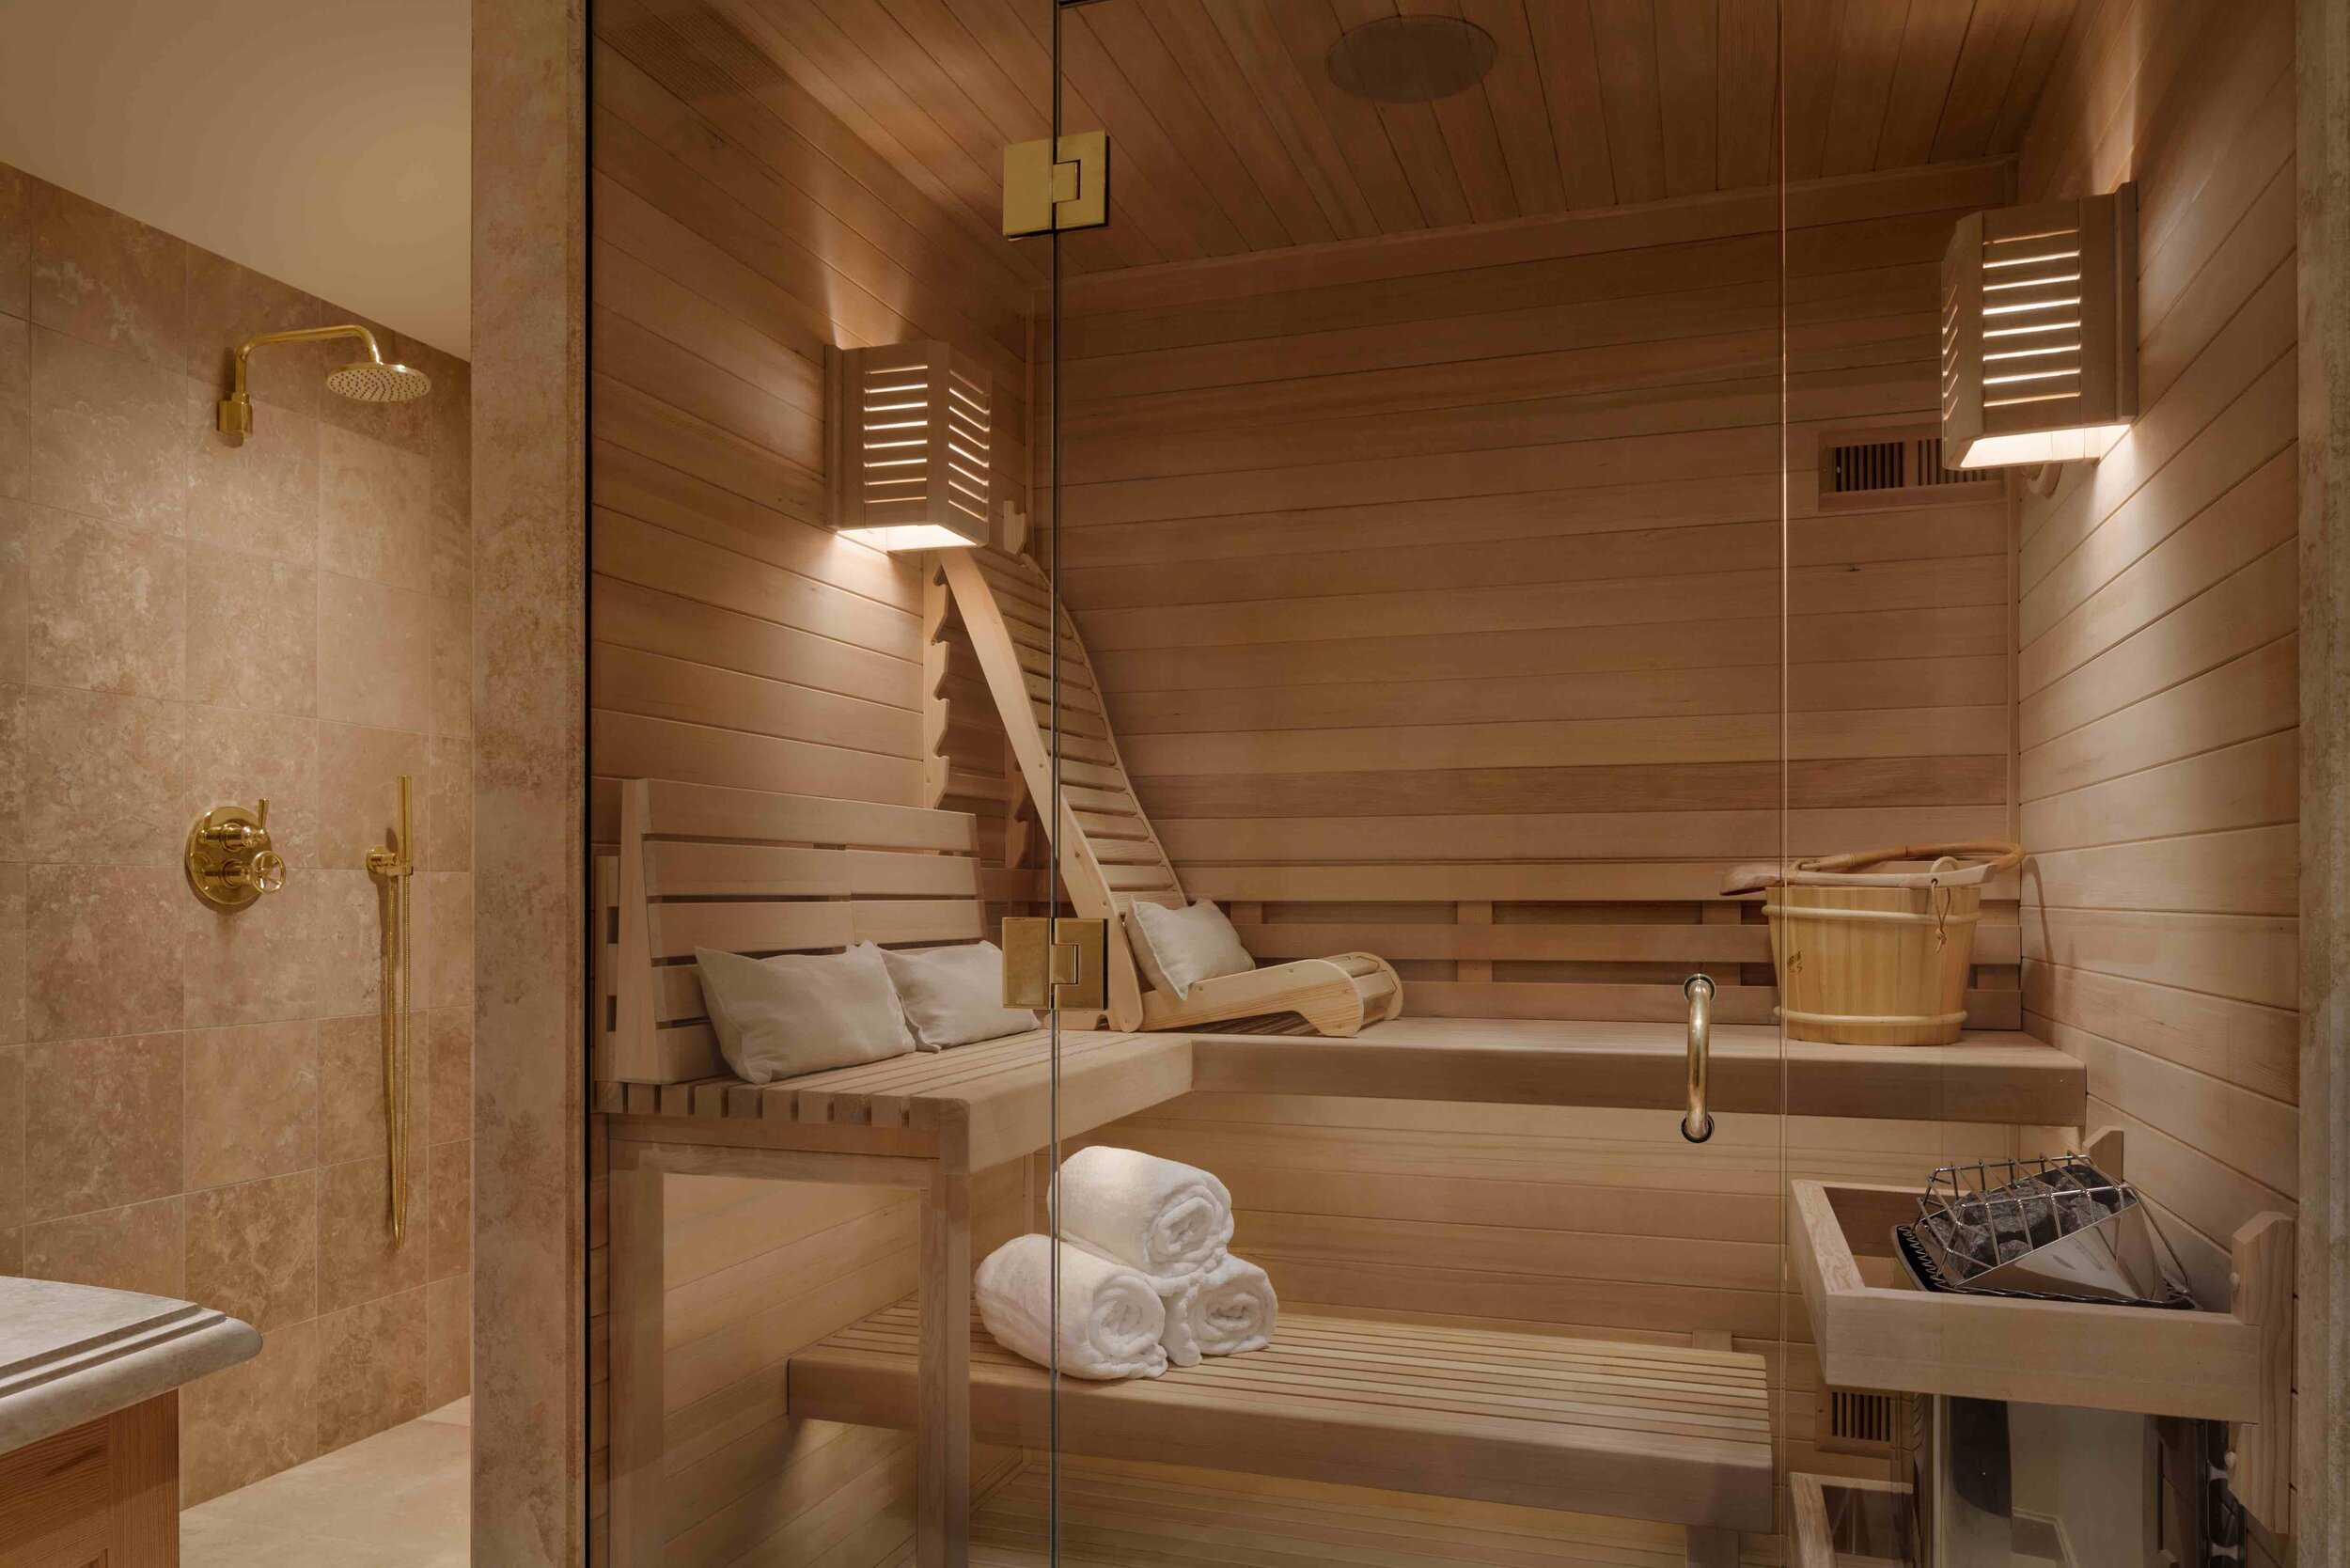 TBS_Woodside_Sauna_Large-2.jpg